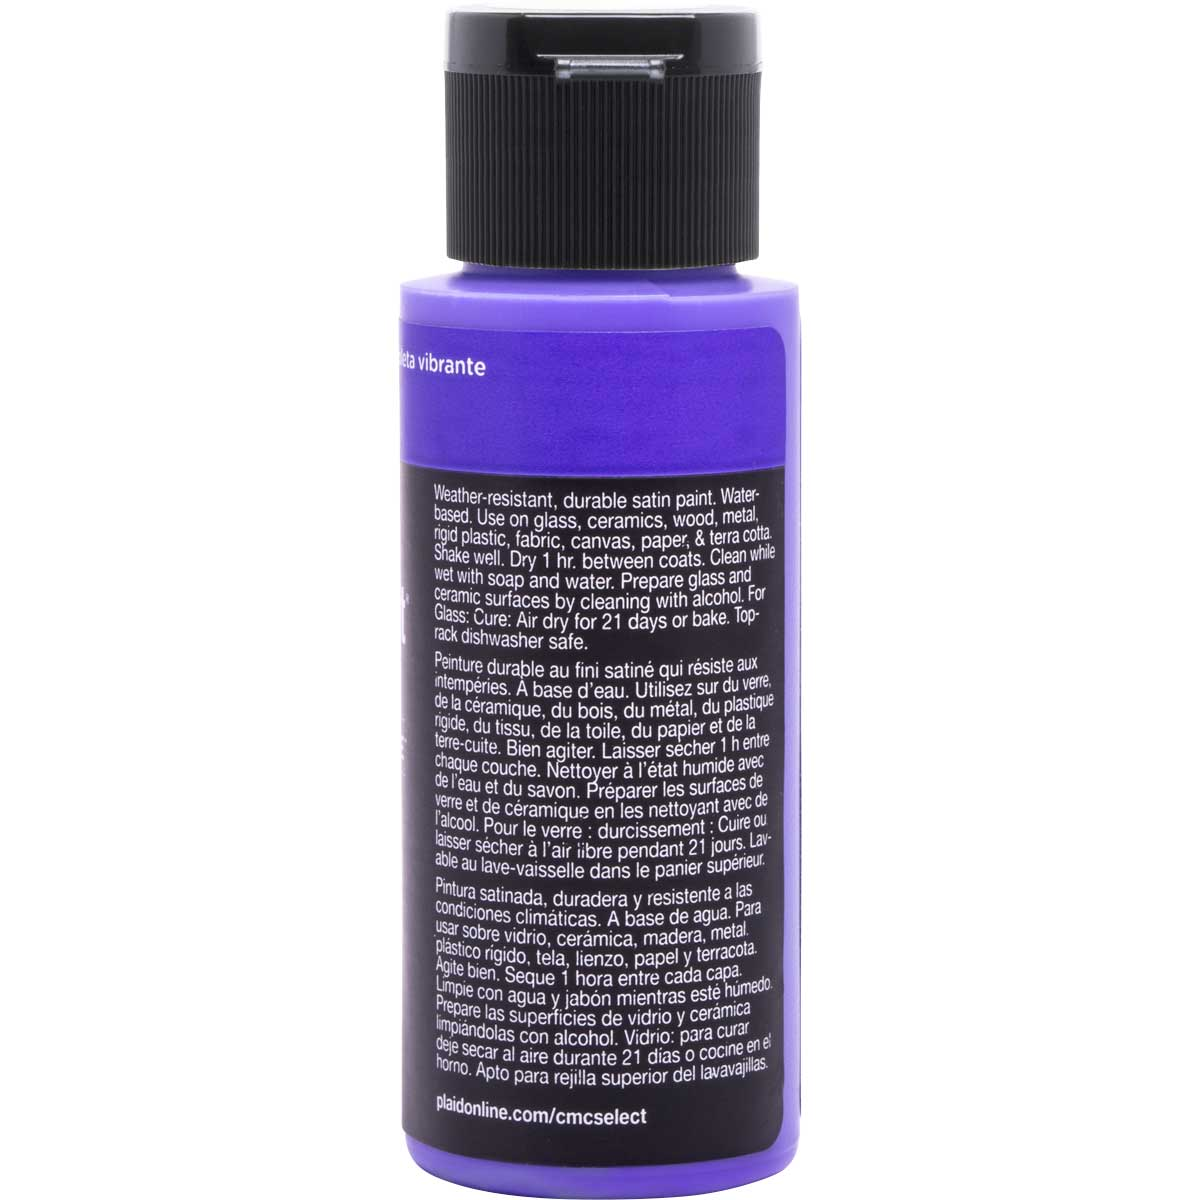 Delta Ceramcoat ® Select Multi-Surface Acrylic Paint - Satin - Vibrant Violet, 2 oz.